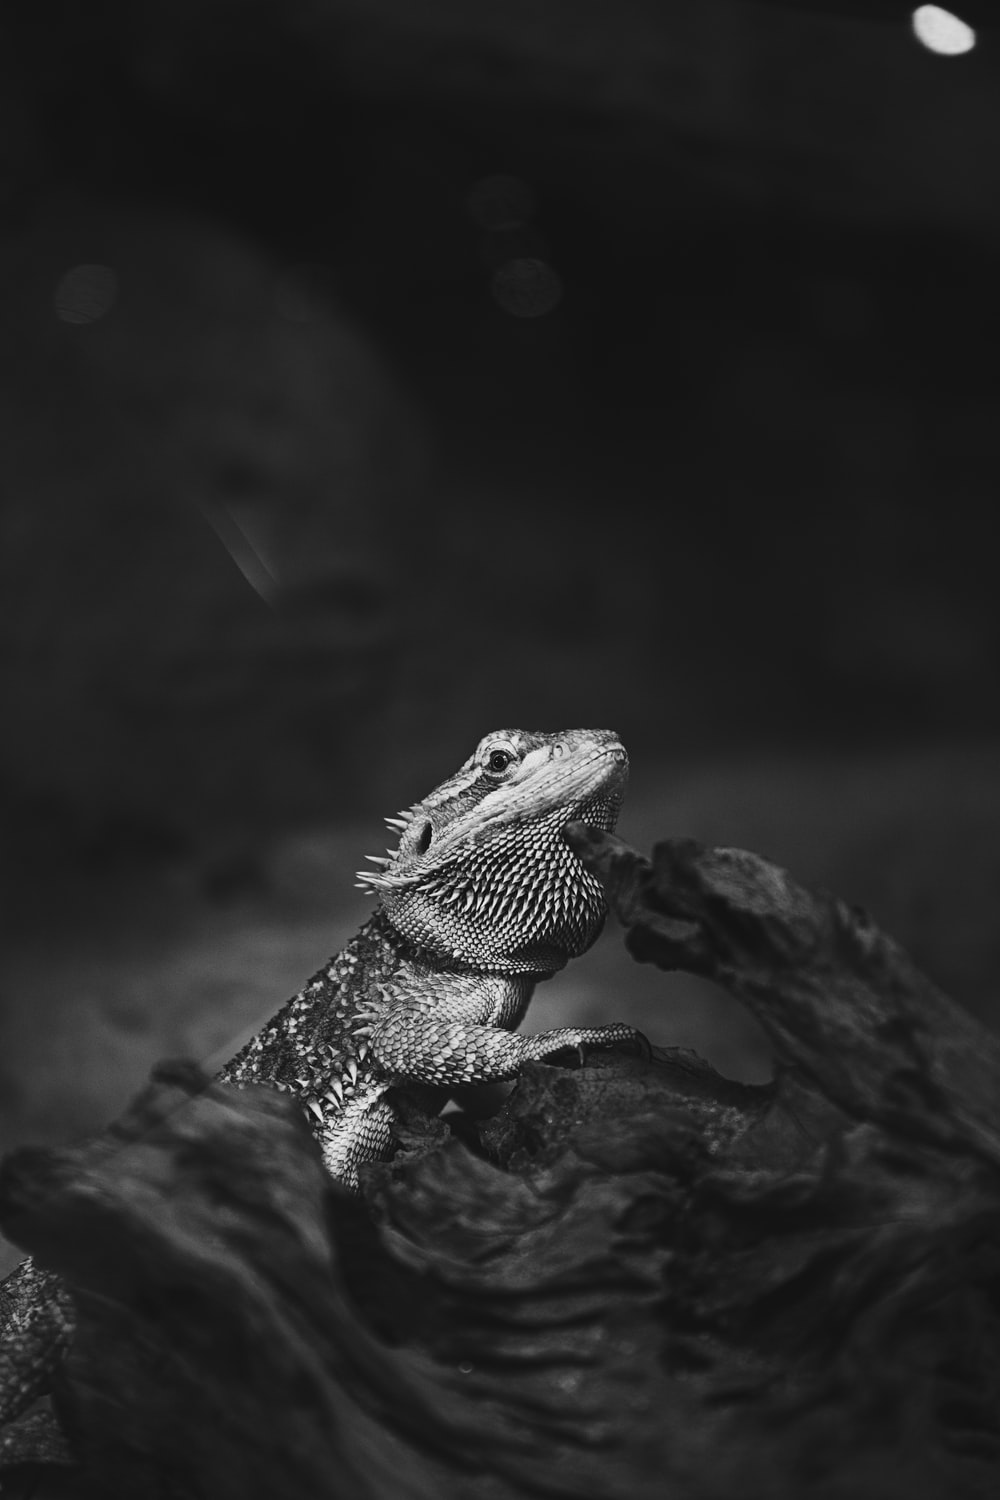 grayscale photography of bearded dragon